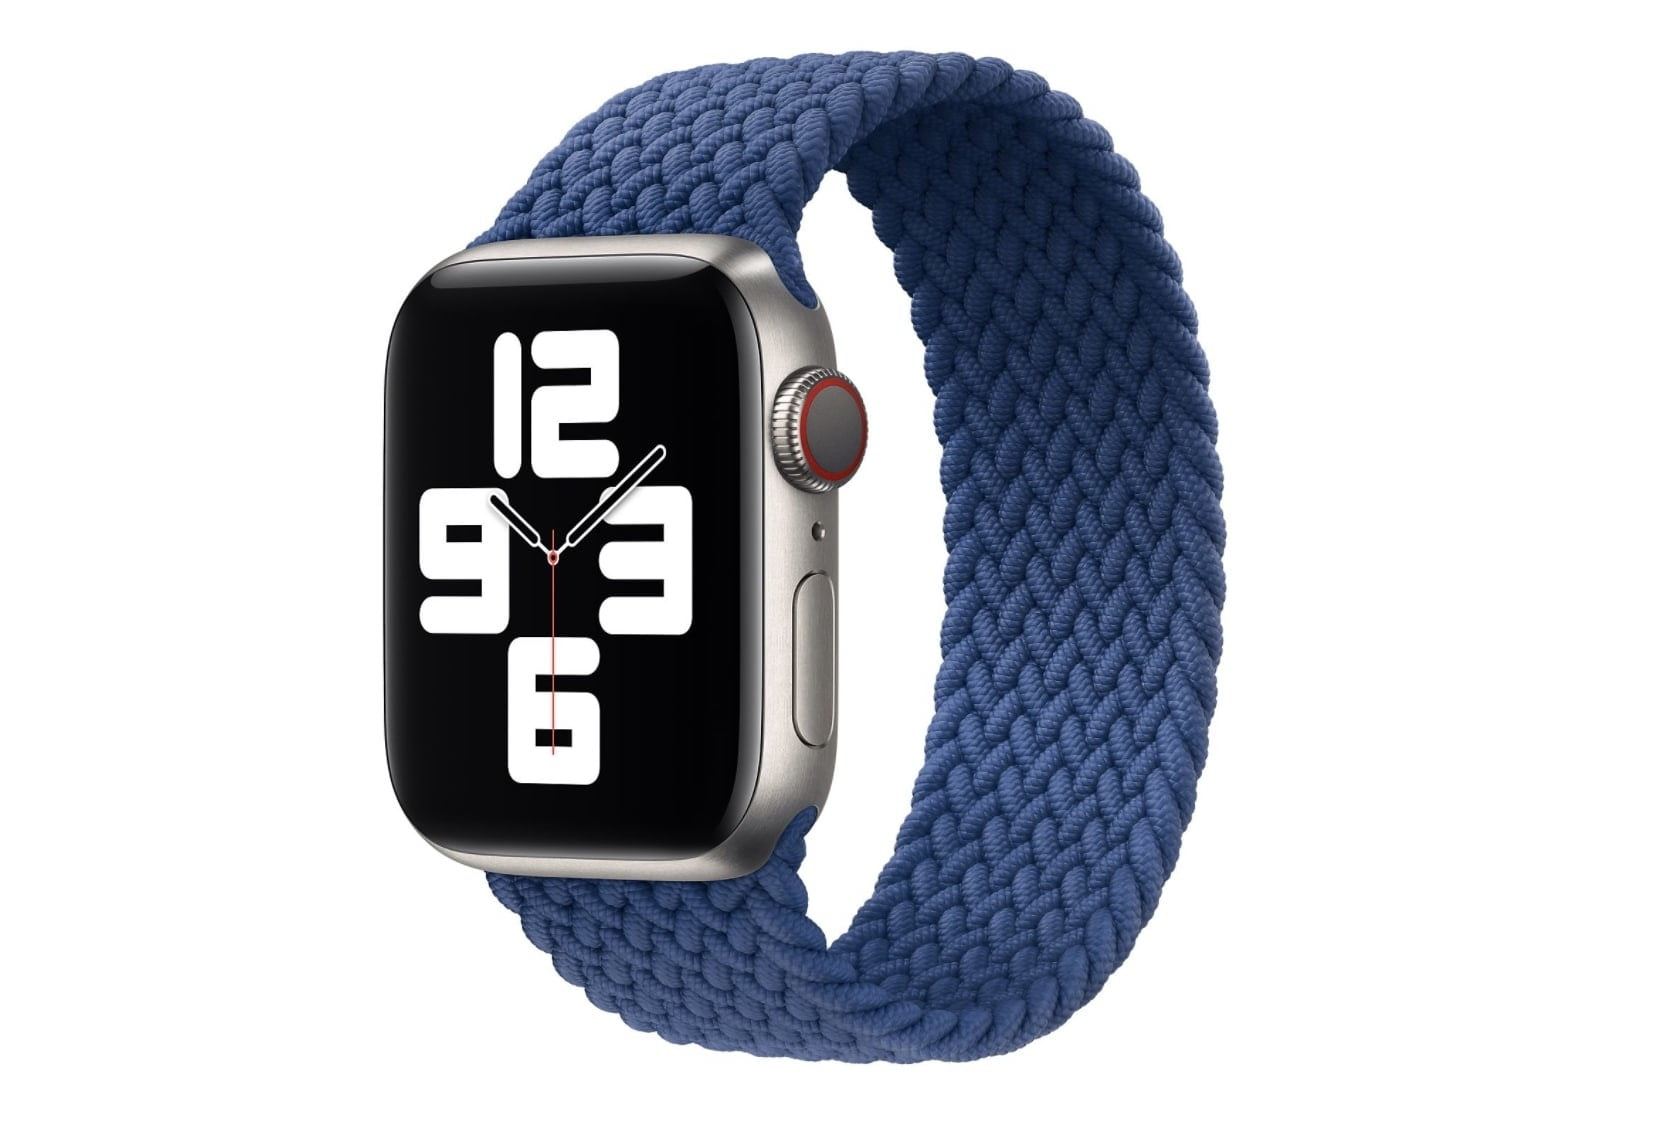 The Apple Watch with the Apple Braided Solo Loop band in blue.